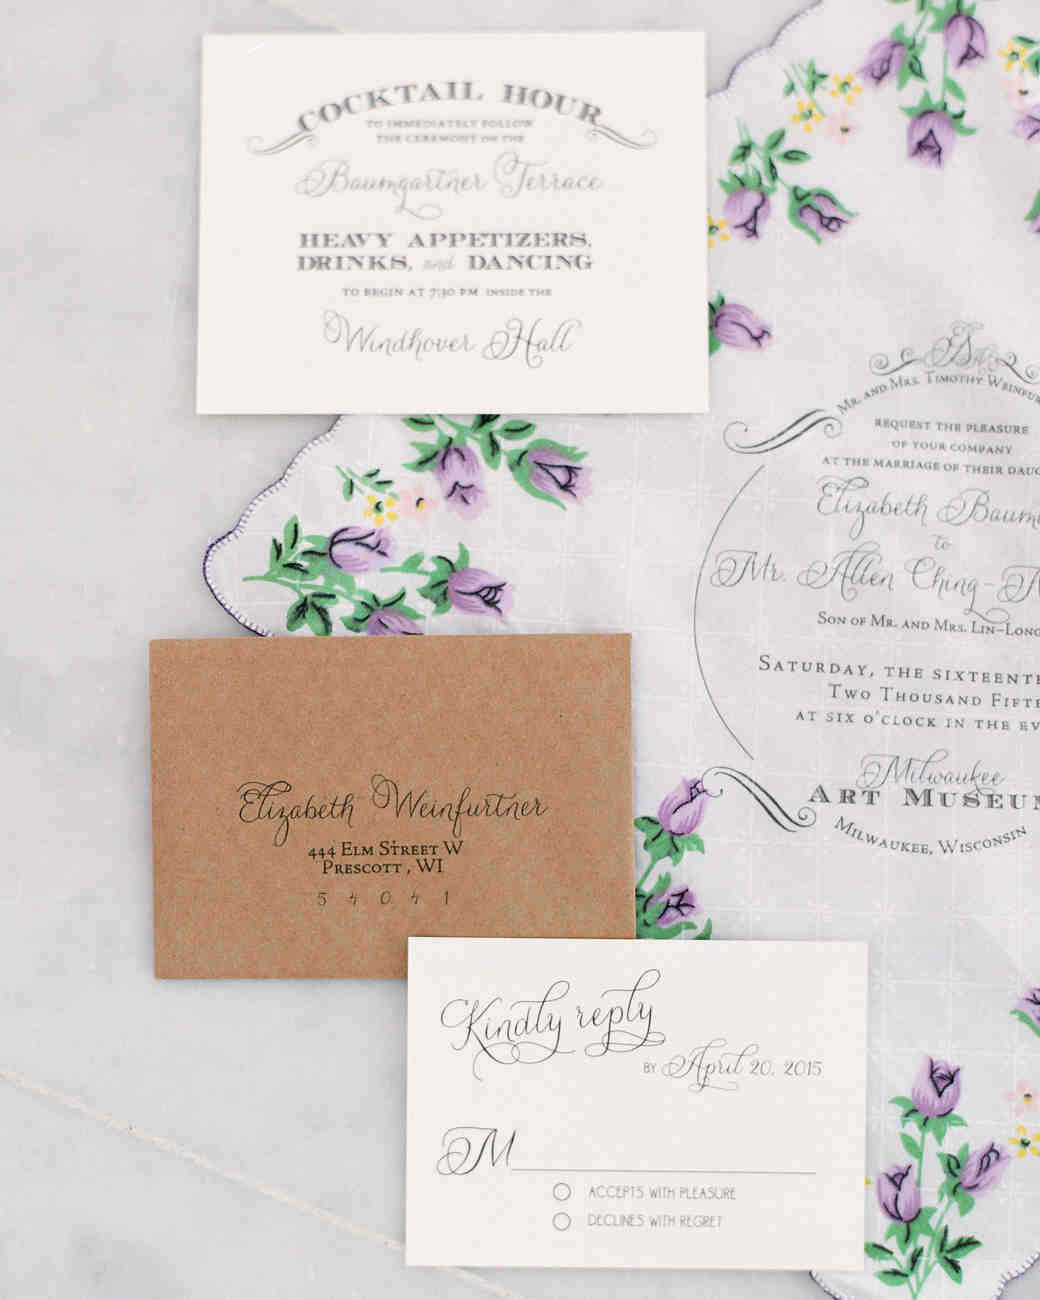 Vintage Wedding Invitations | Martha Stewart Weddings